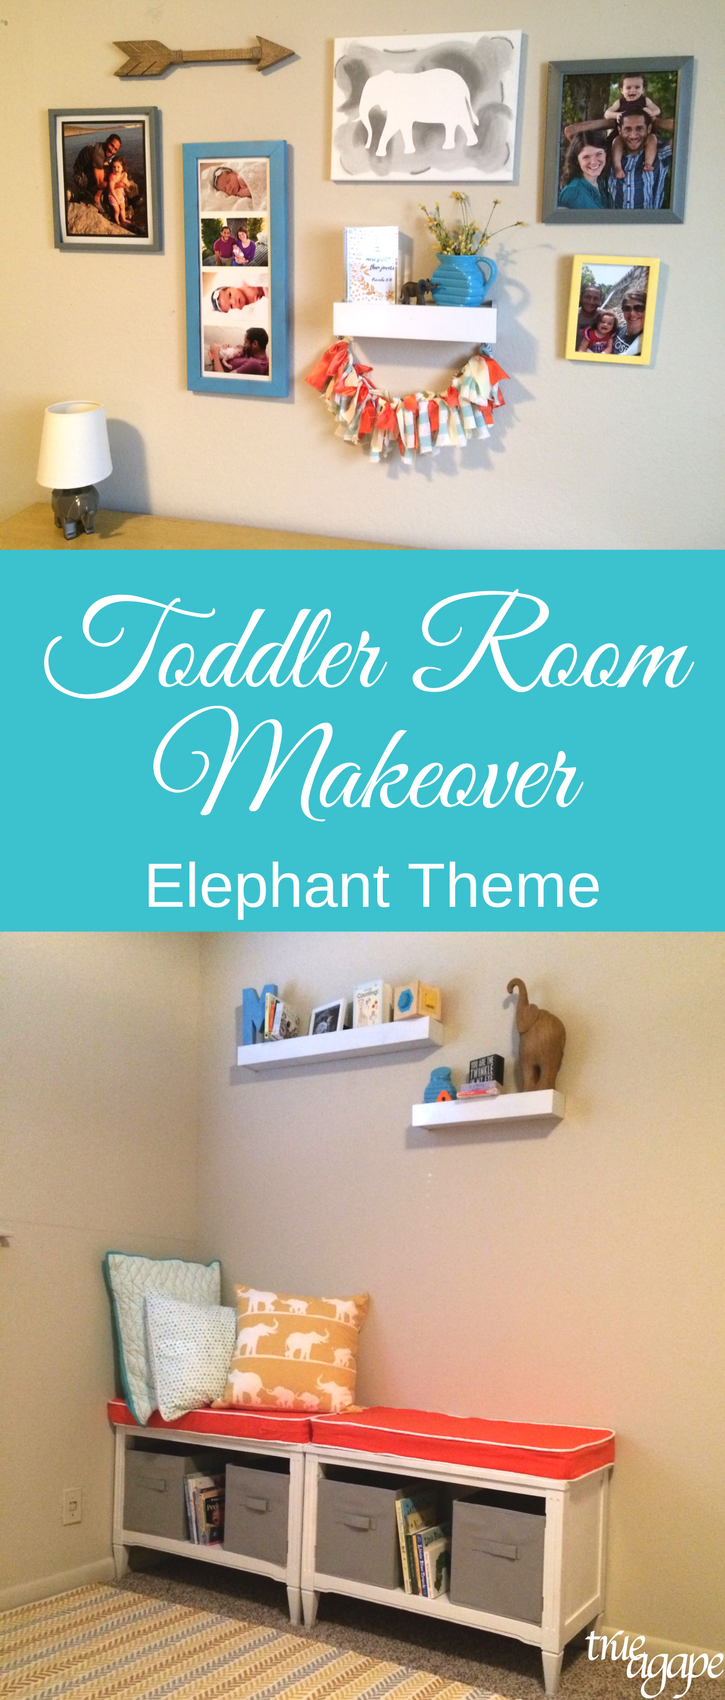 elephant-theme-toddler-room-makeover